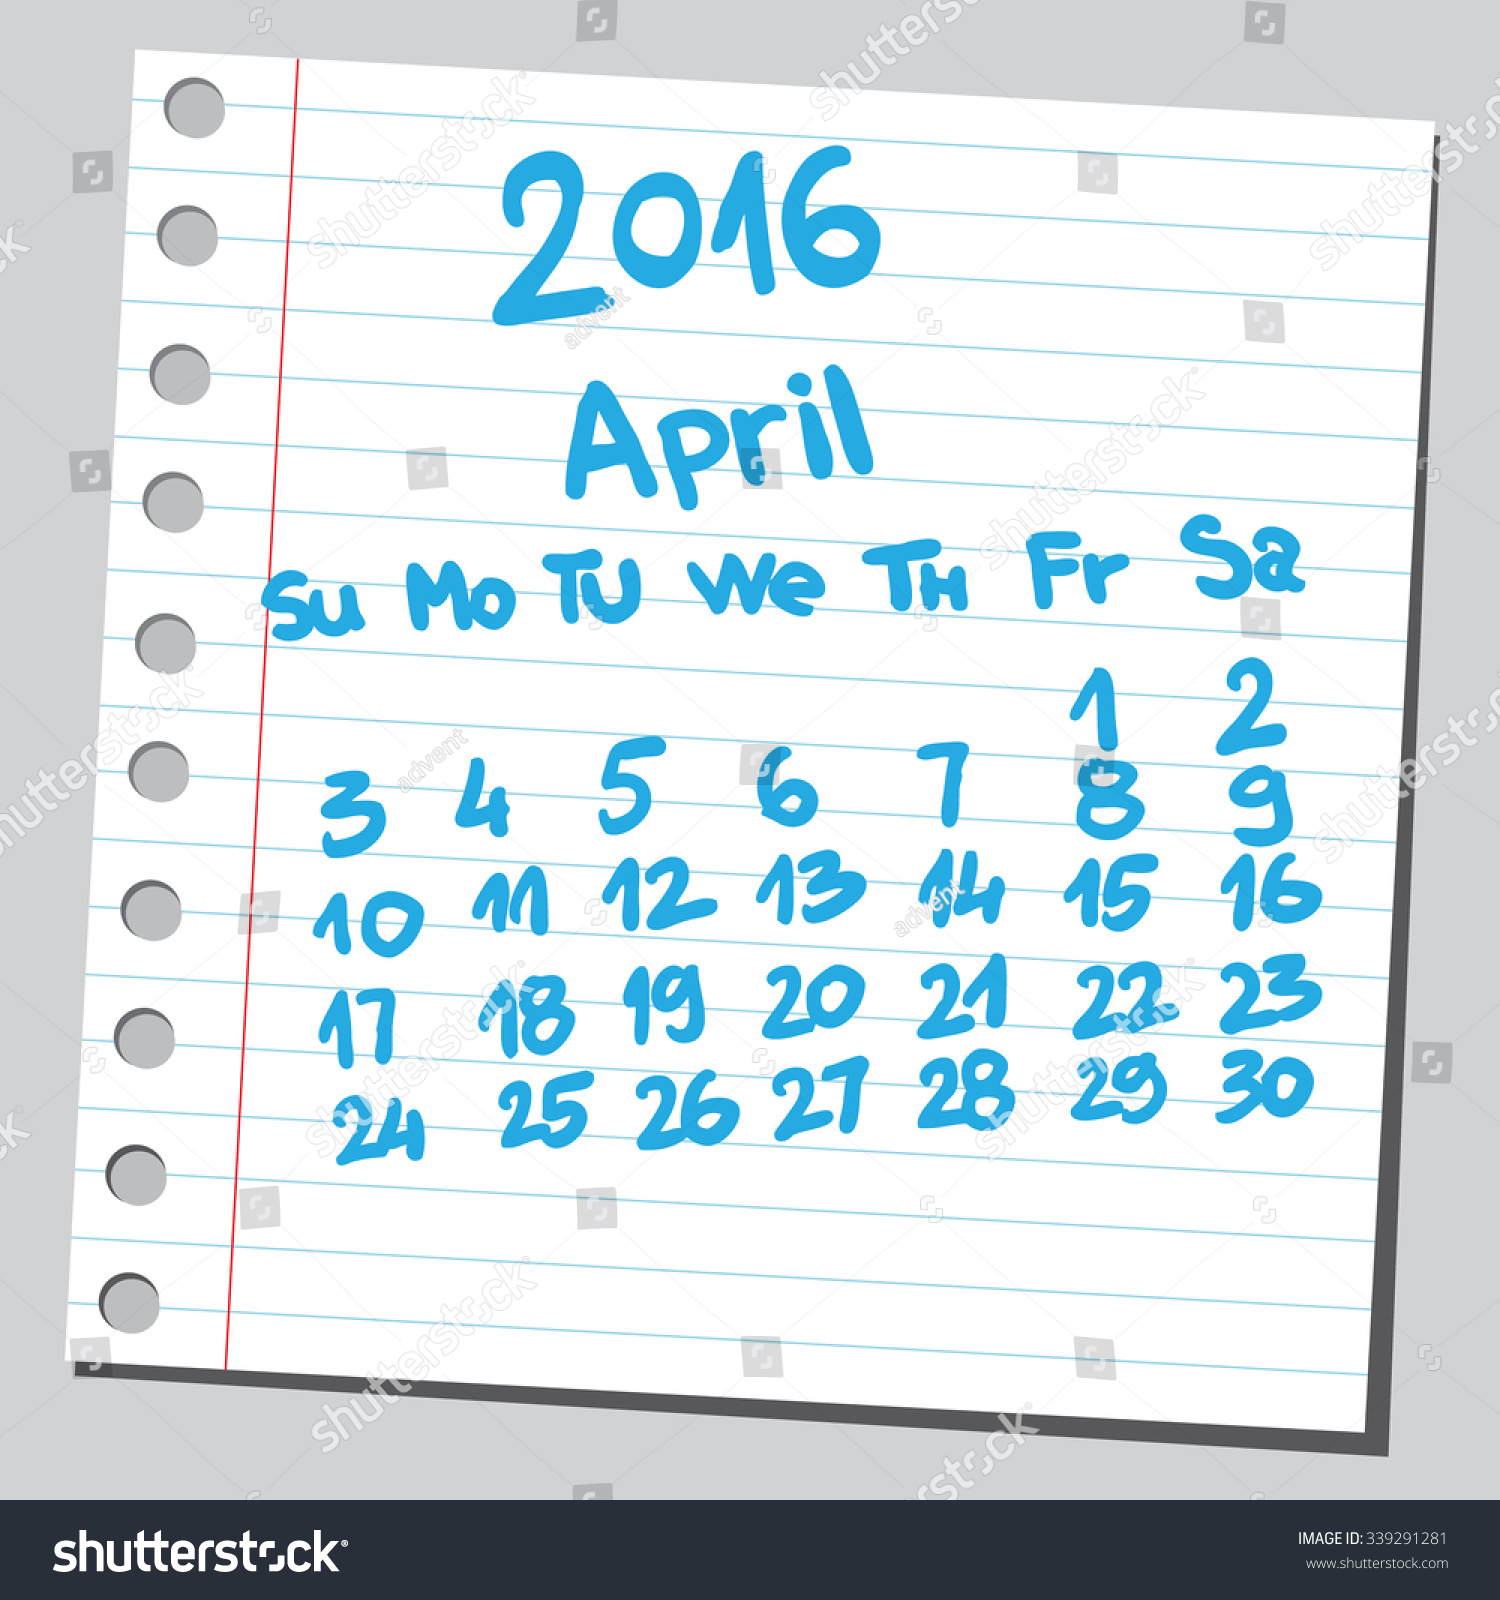 Calendar April Vector : Calendar april sketch style stock vector